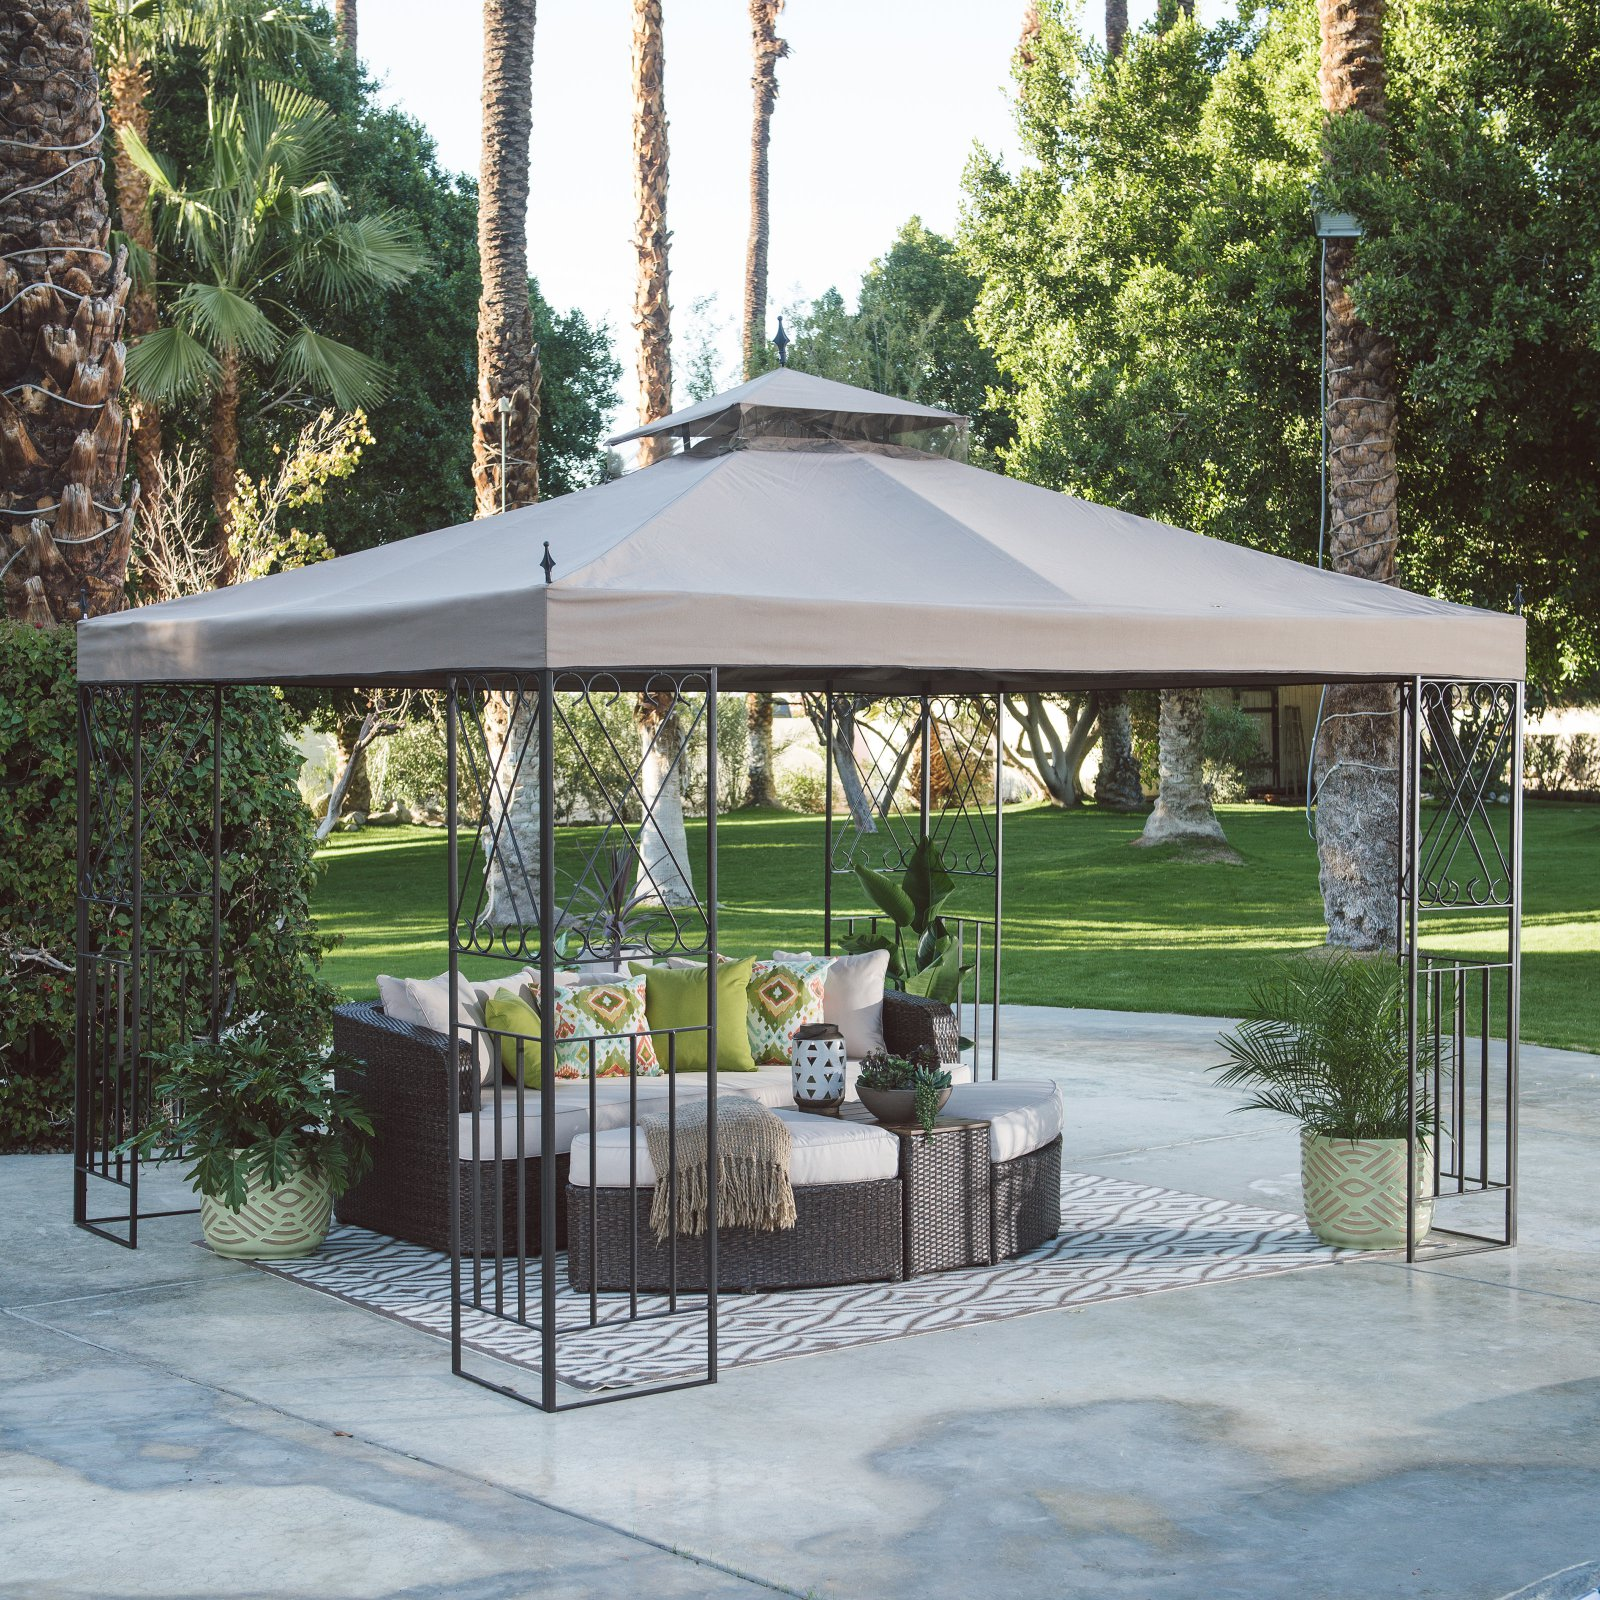 Belham Living Parlay 10 x 12 ft. Gazebo by